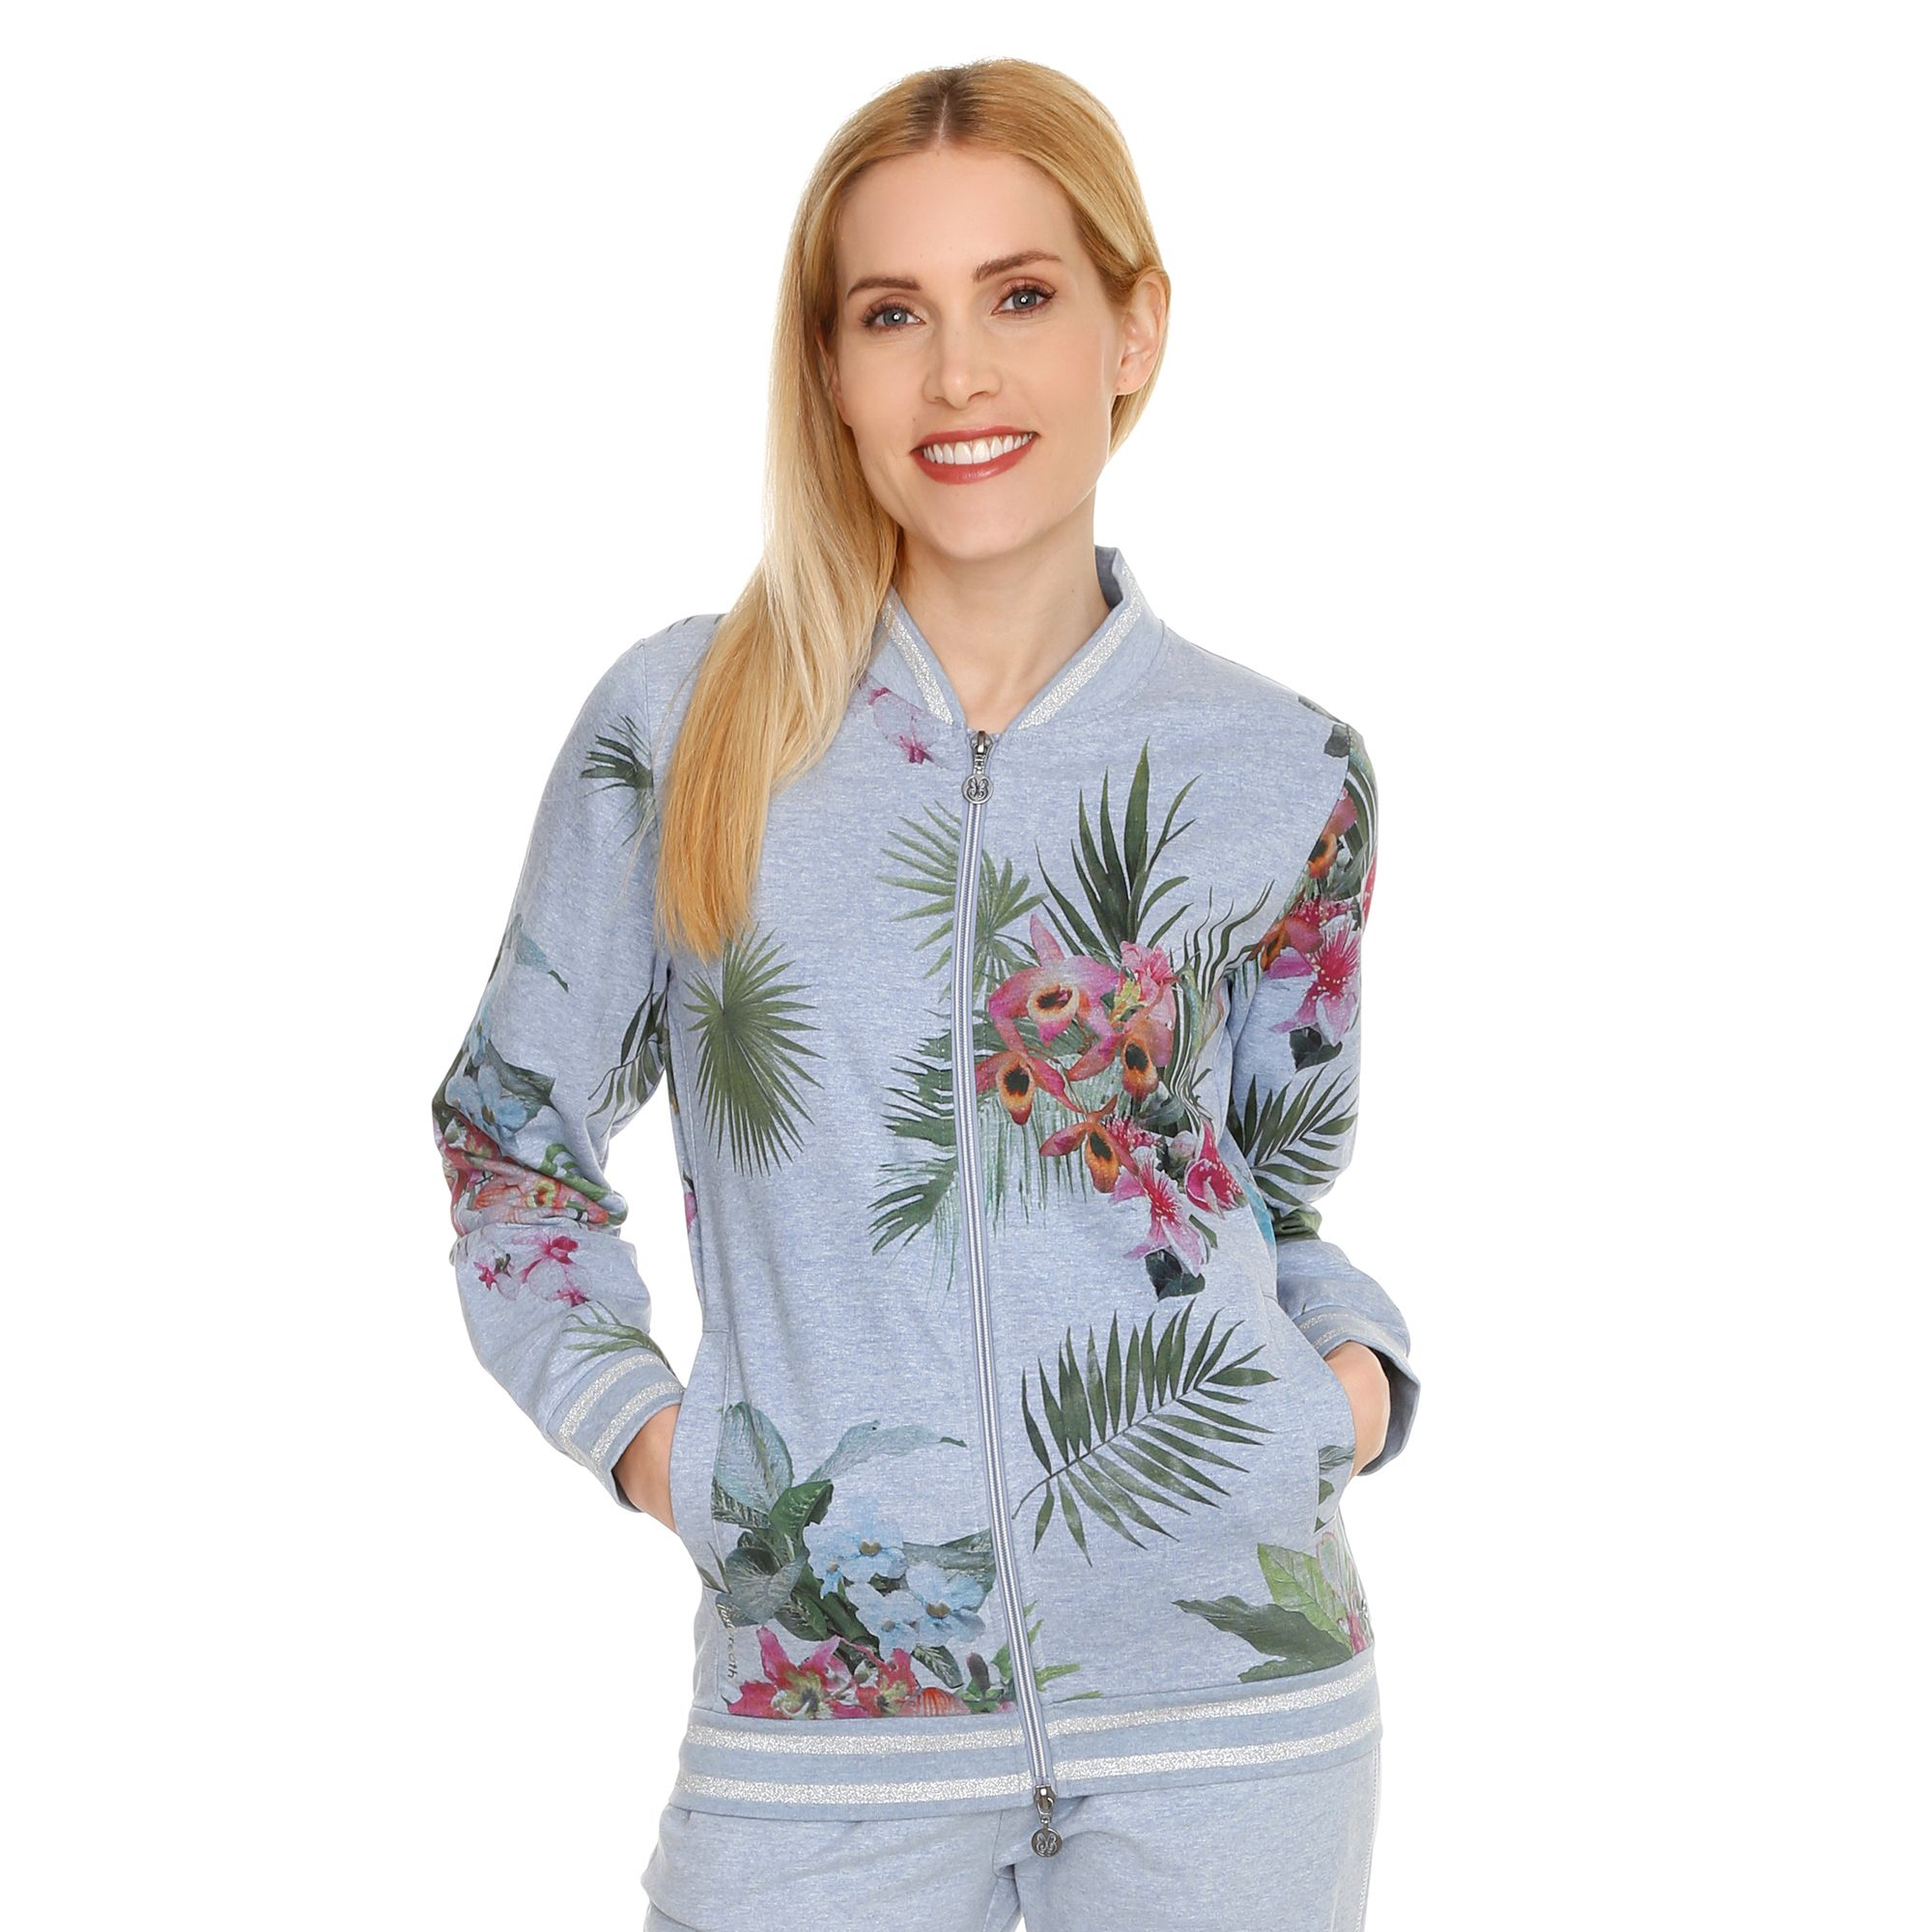 Barbara Becker Kollektion Barbara Becker Miami Fit Blouson Sweat Floraler Druck Glanzgarn Qvc De